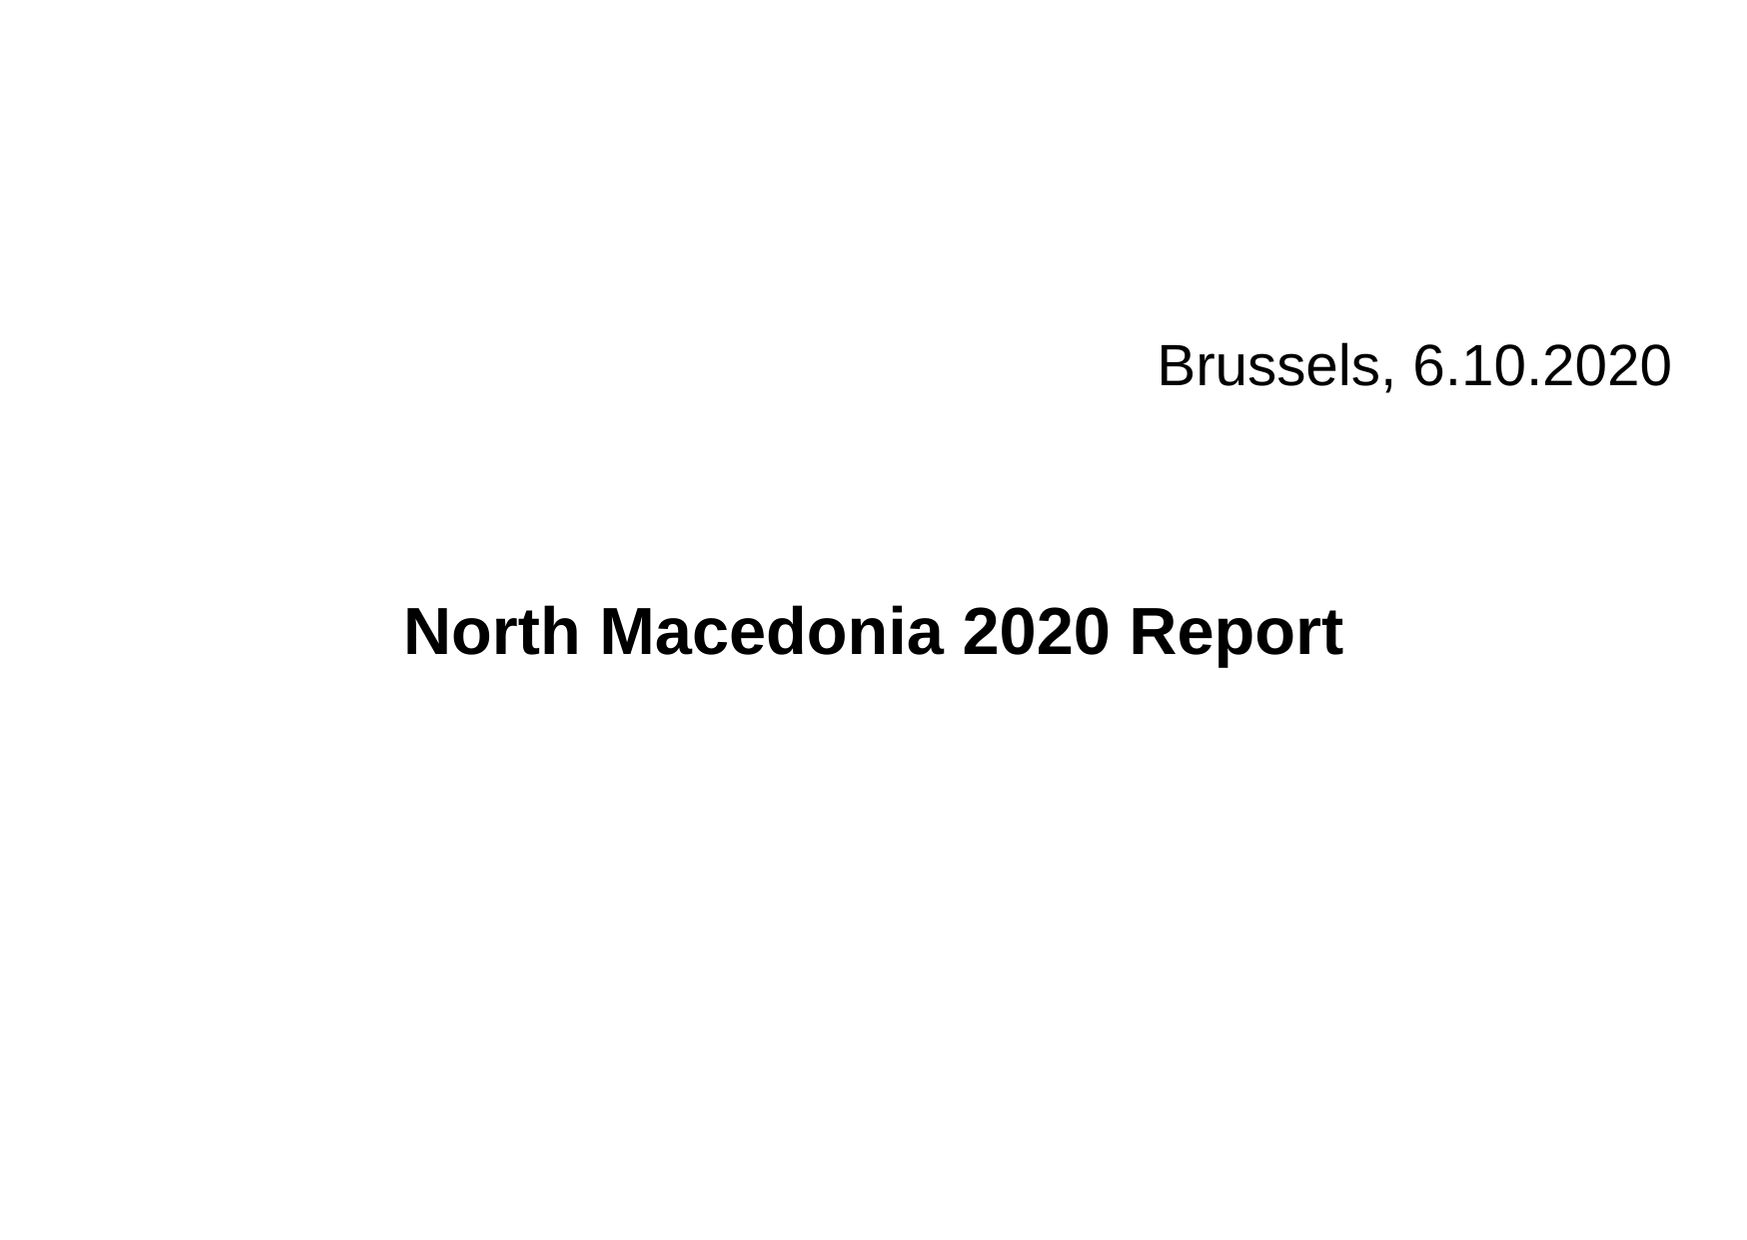 1. North Macedonia 2020 Report